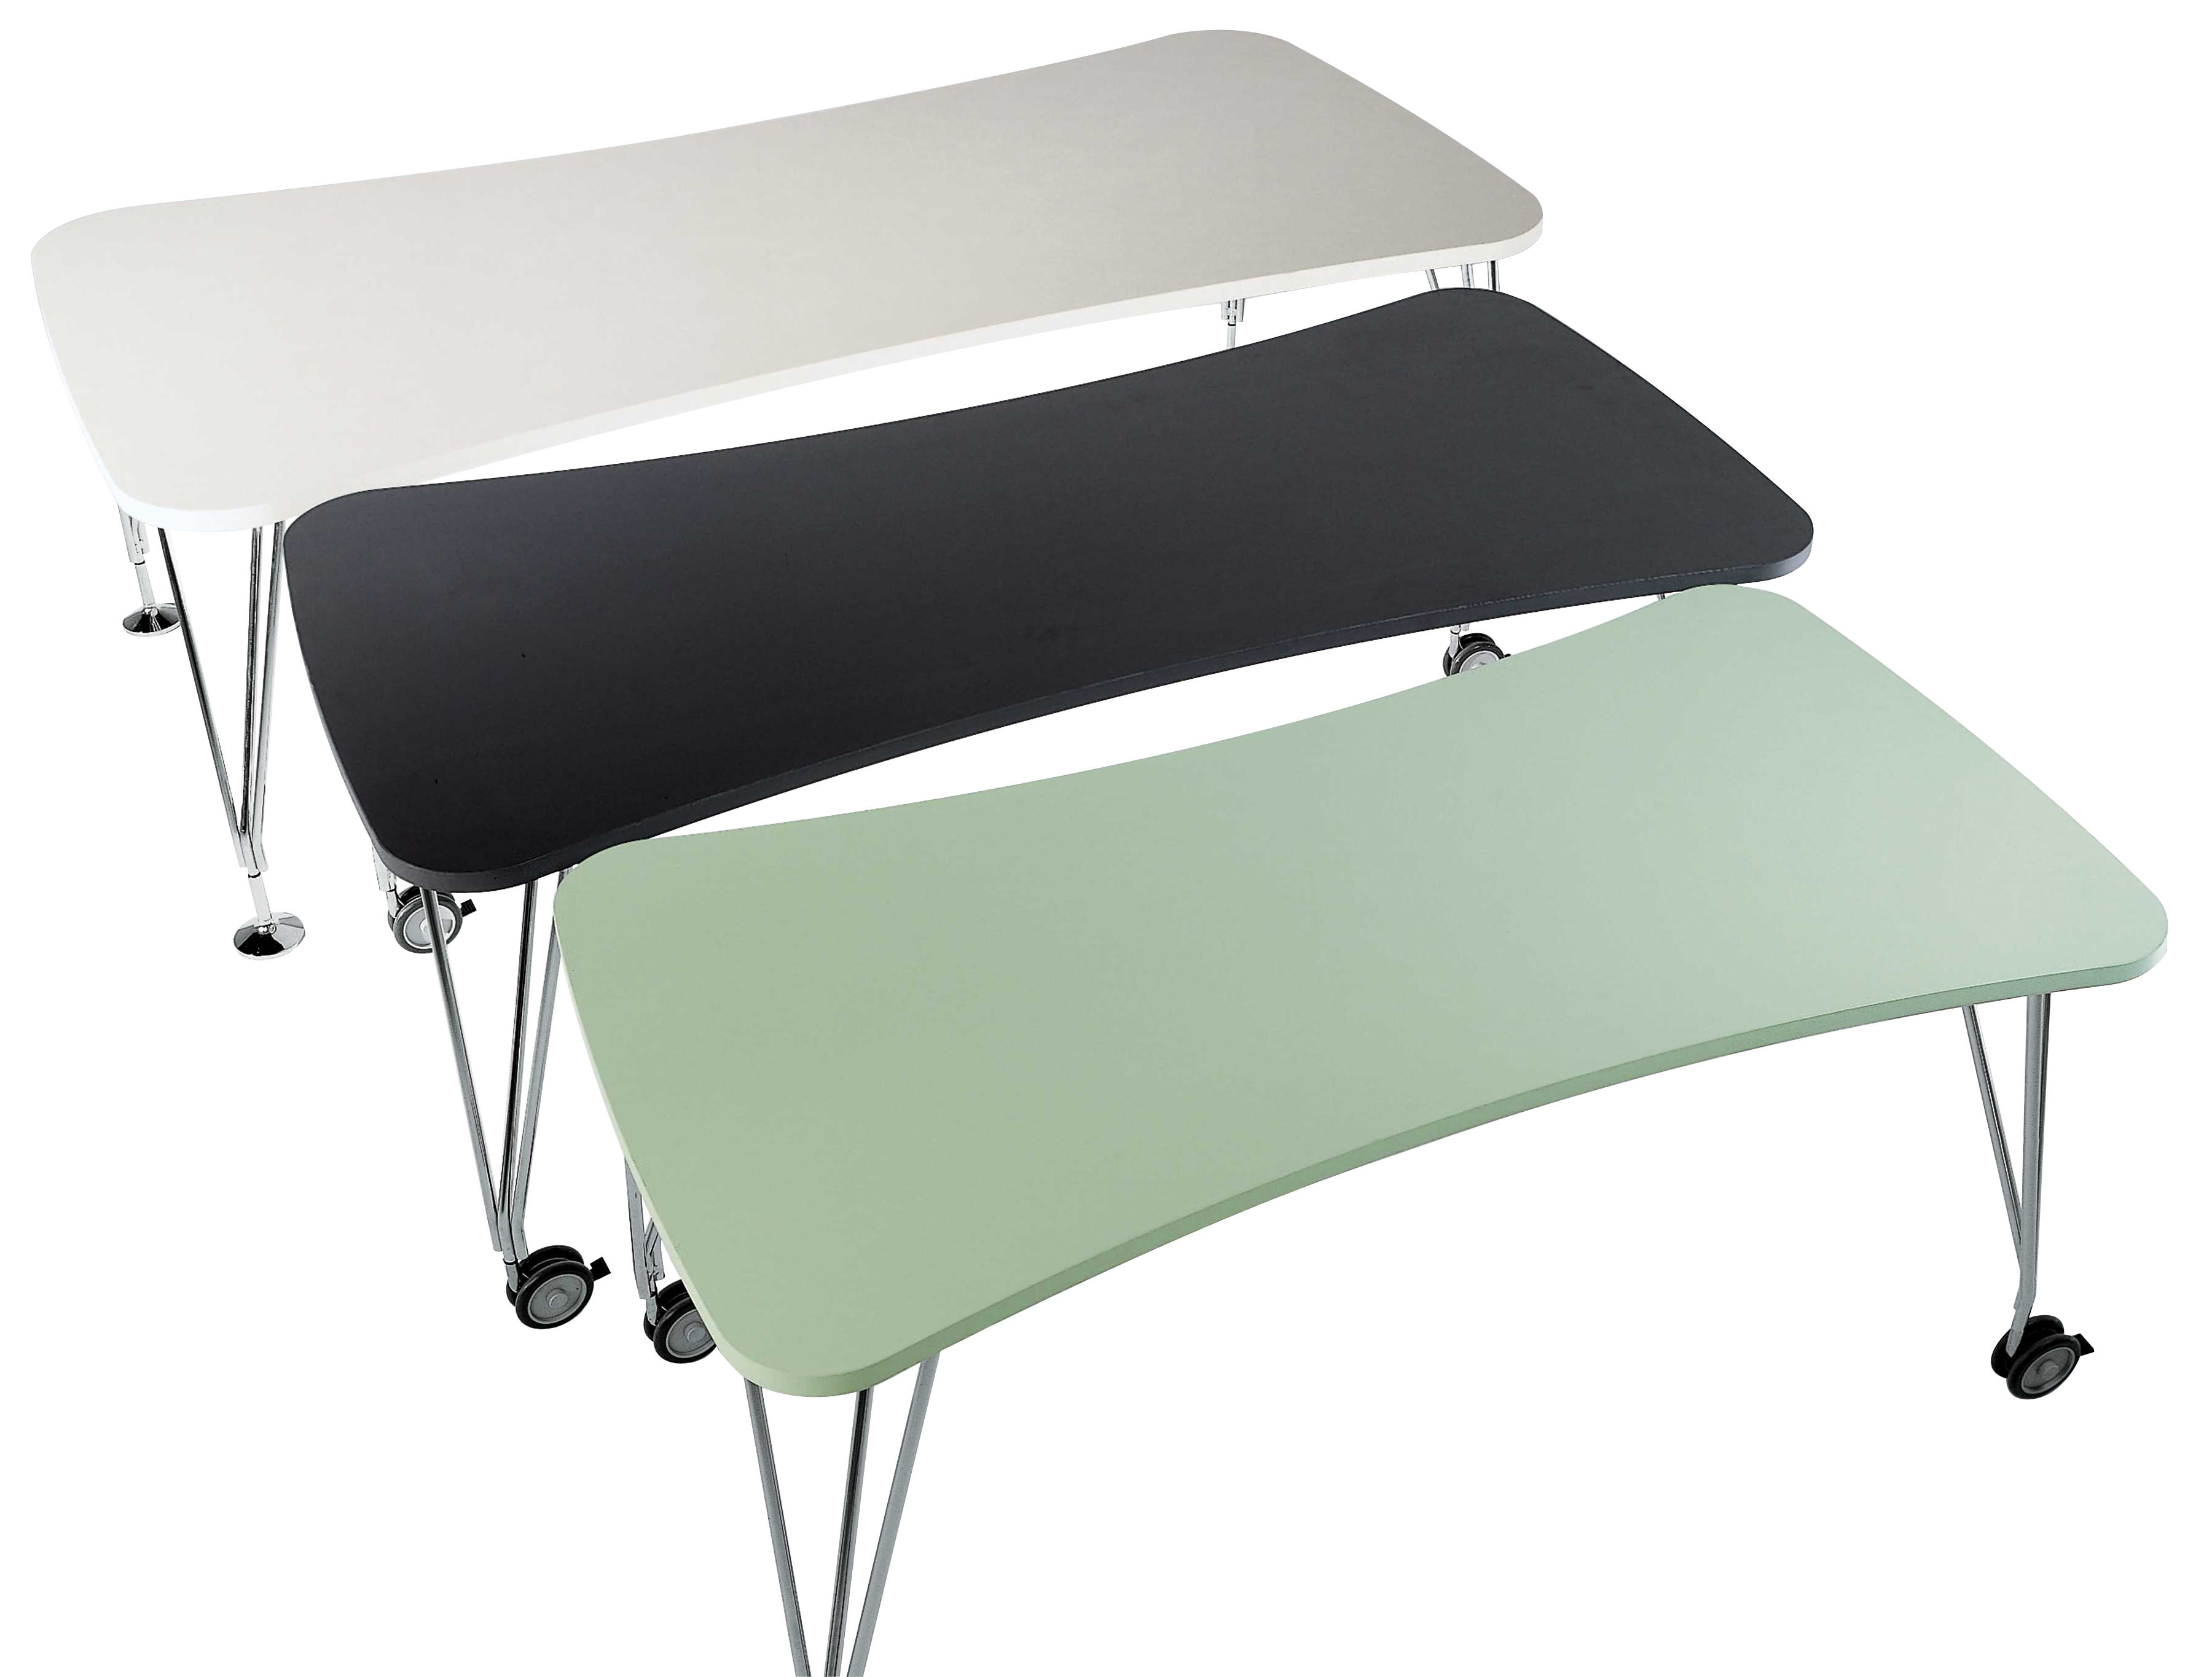 Furniture - Teen furniture - Max Table - With feet - 160 cm by Kartell - slate 160 cm - Chromed steel, Laminate